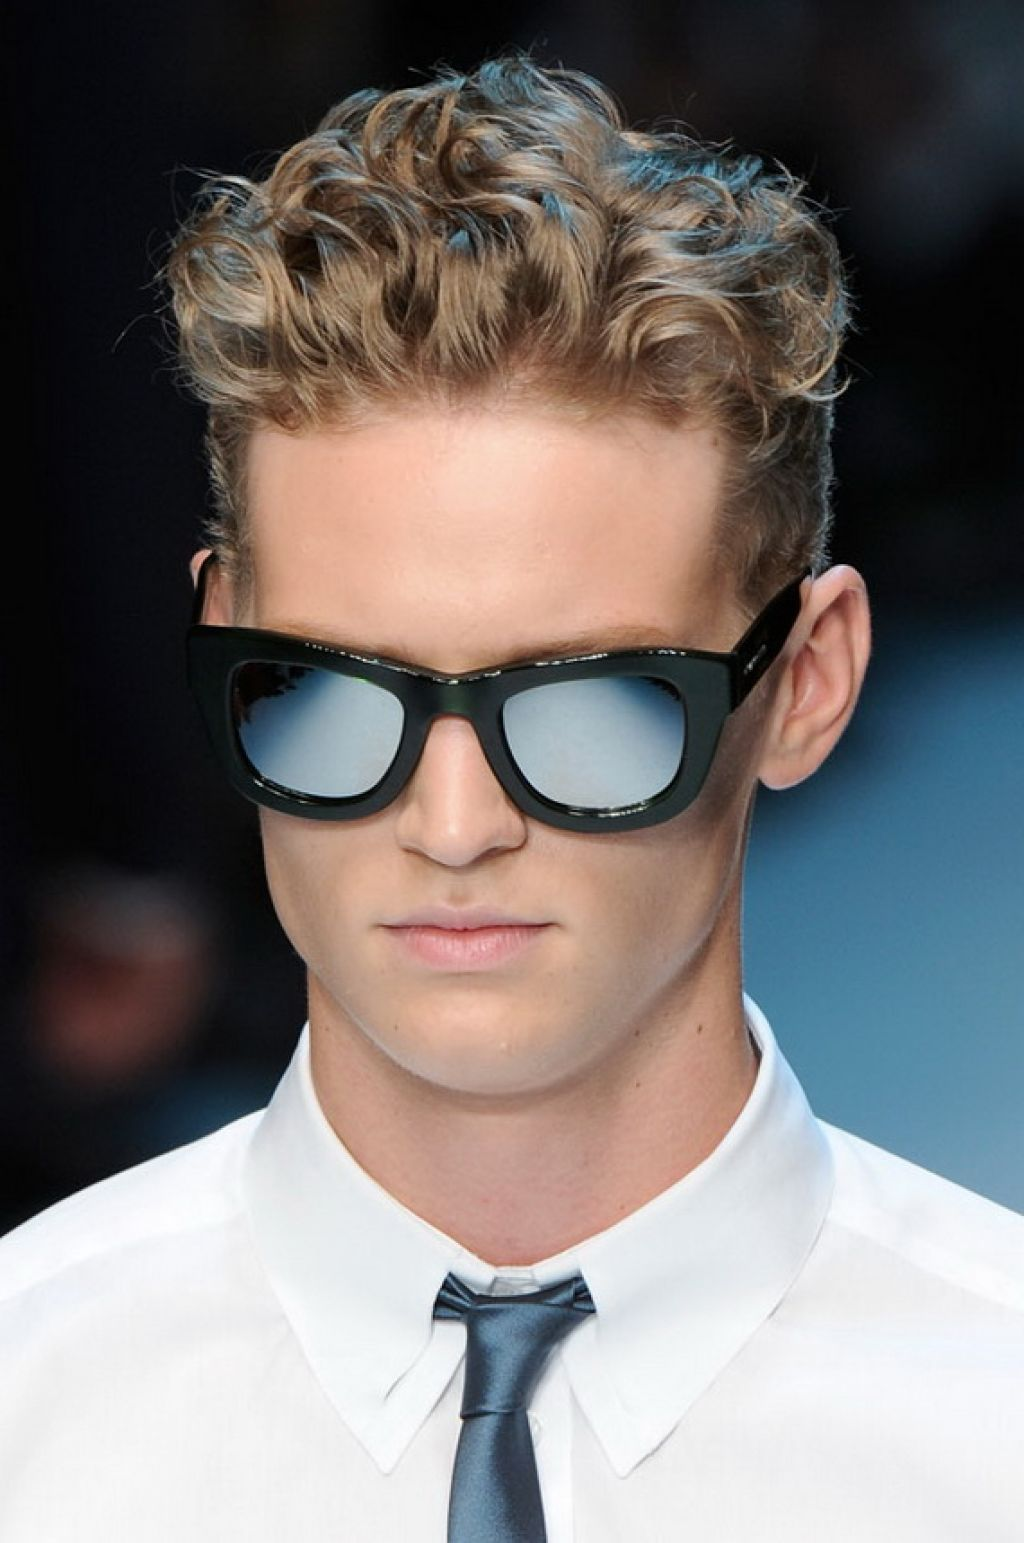 15 Mens Hairstyle For Thick Hair Beautiful Ideas For 2018 Hairdo Hairstyle Curly Hair Men Thin Hair Haircuts Thick Curly Hair